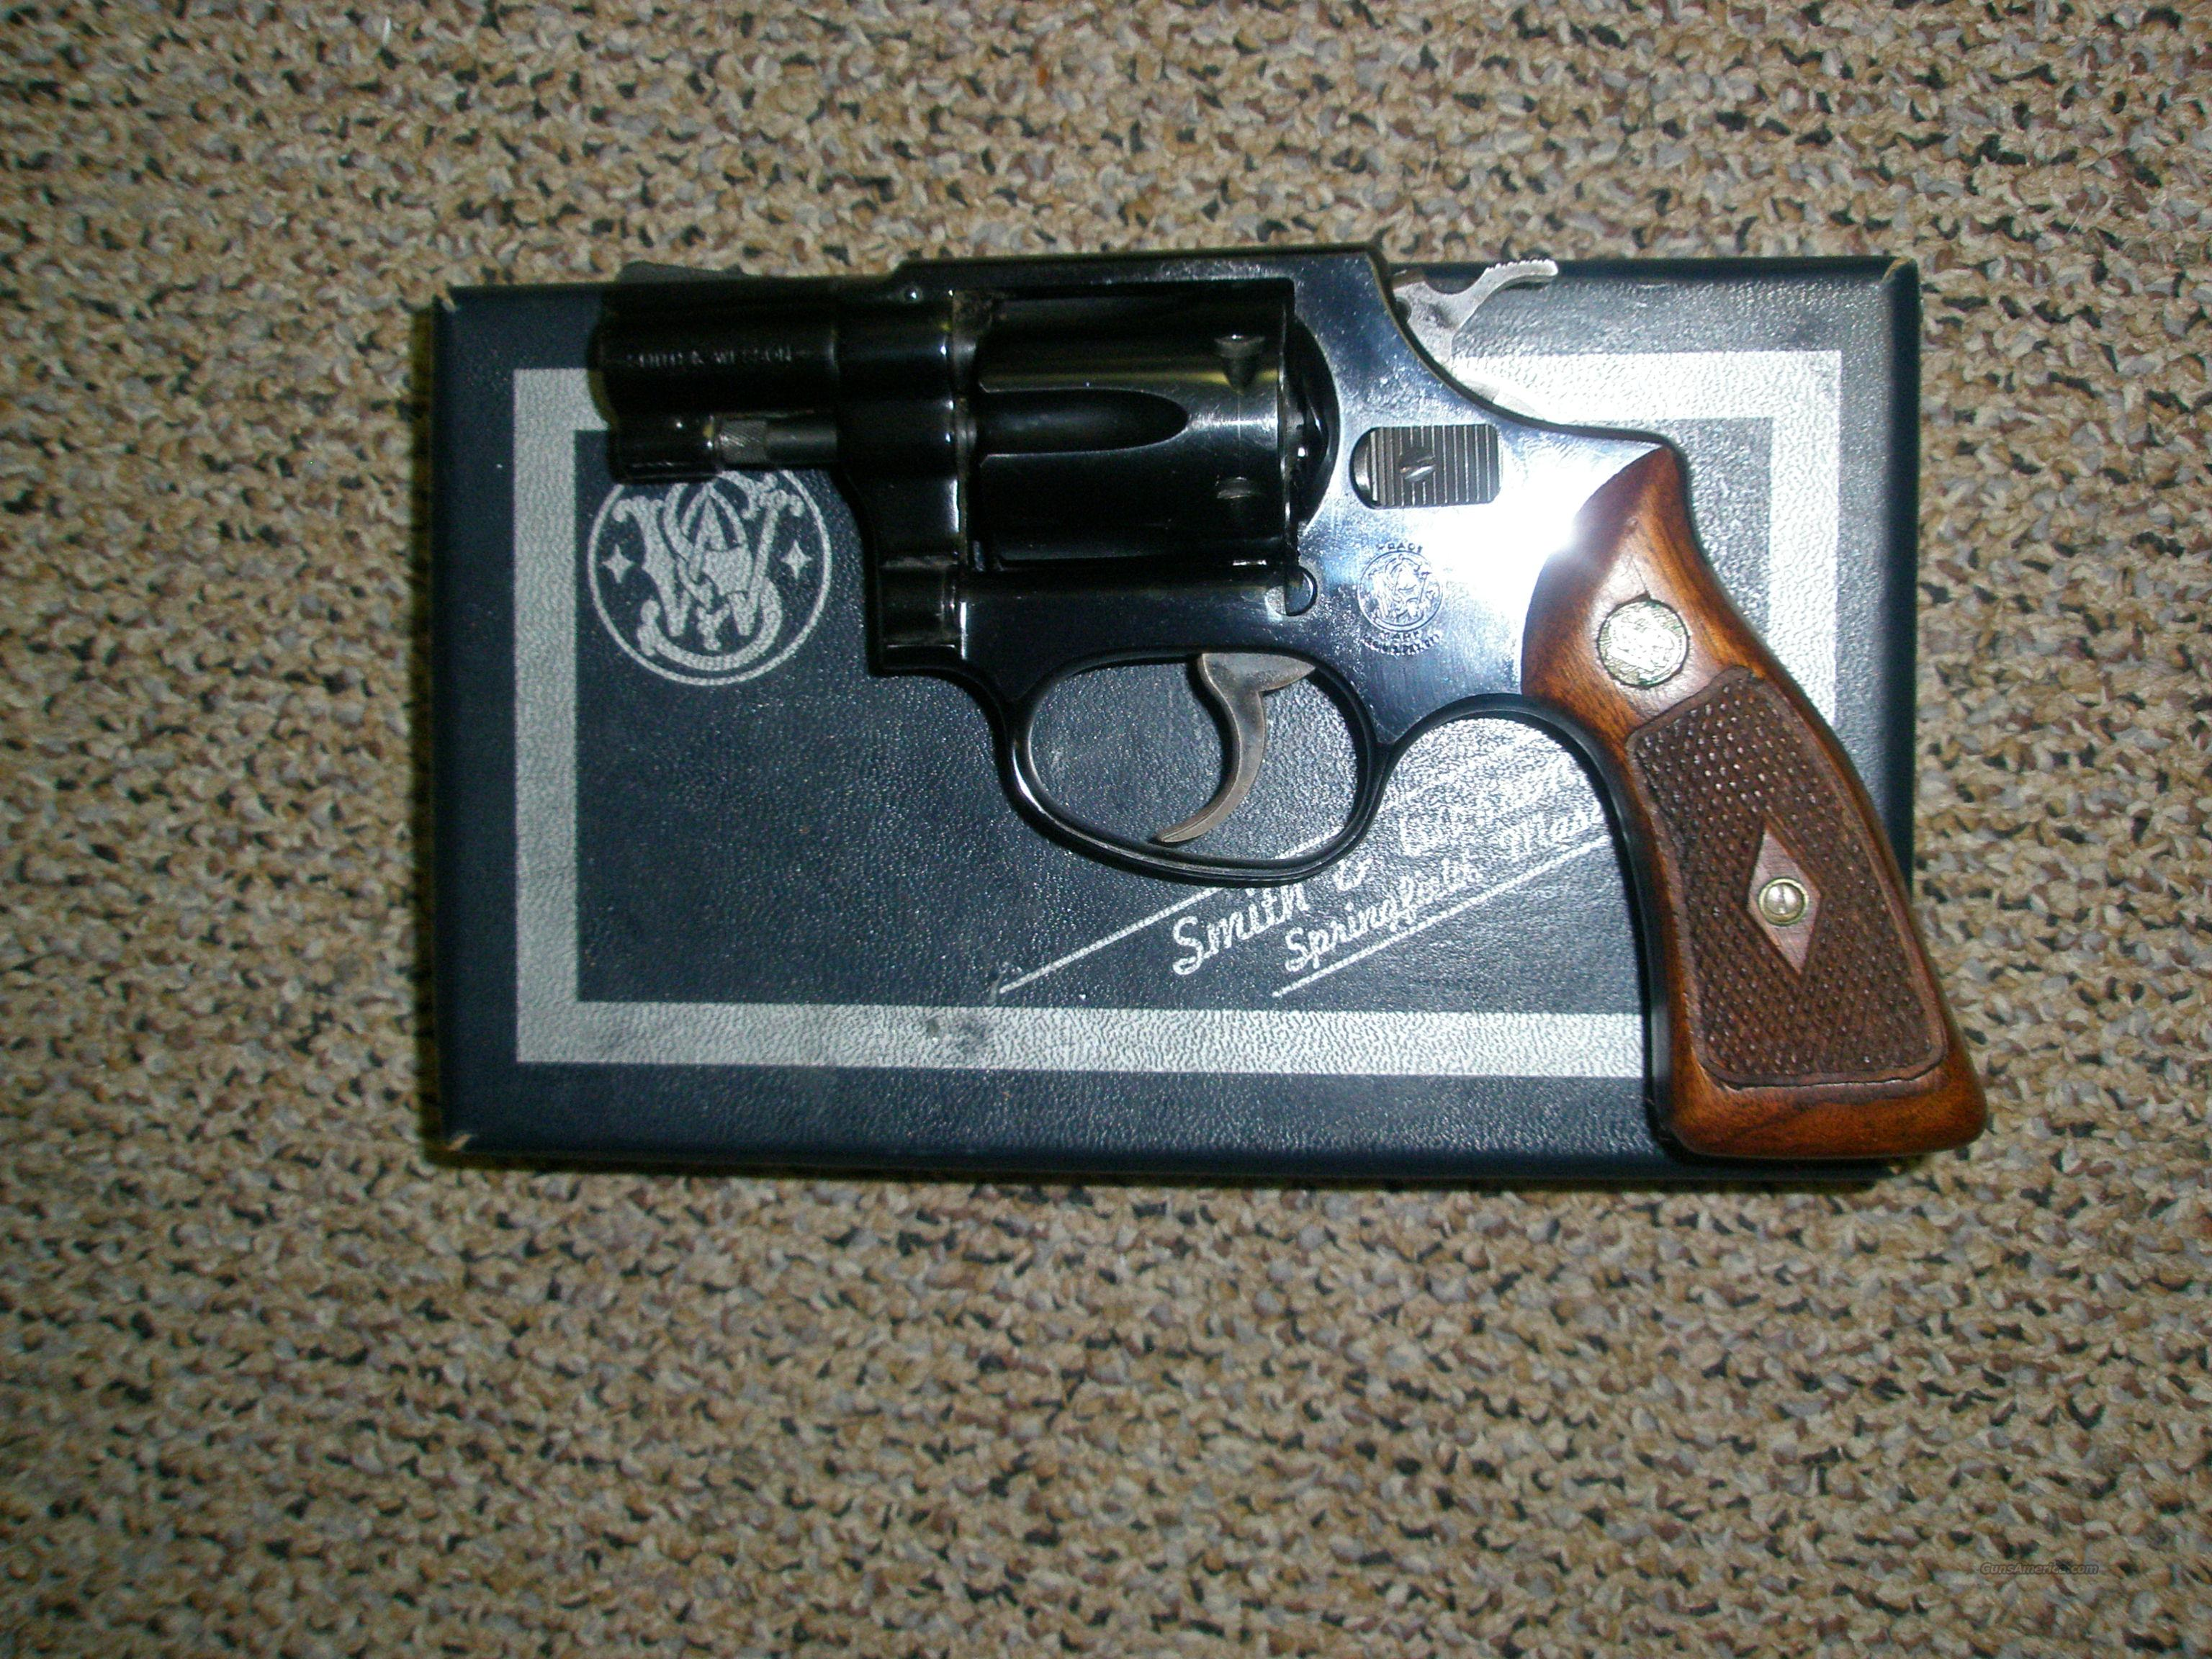 Smith Wesson 31-1 .32 SW long with box.  Guns > Pistols > Smith & Wesson Revolvers > Full Frame Revolver